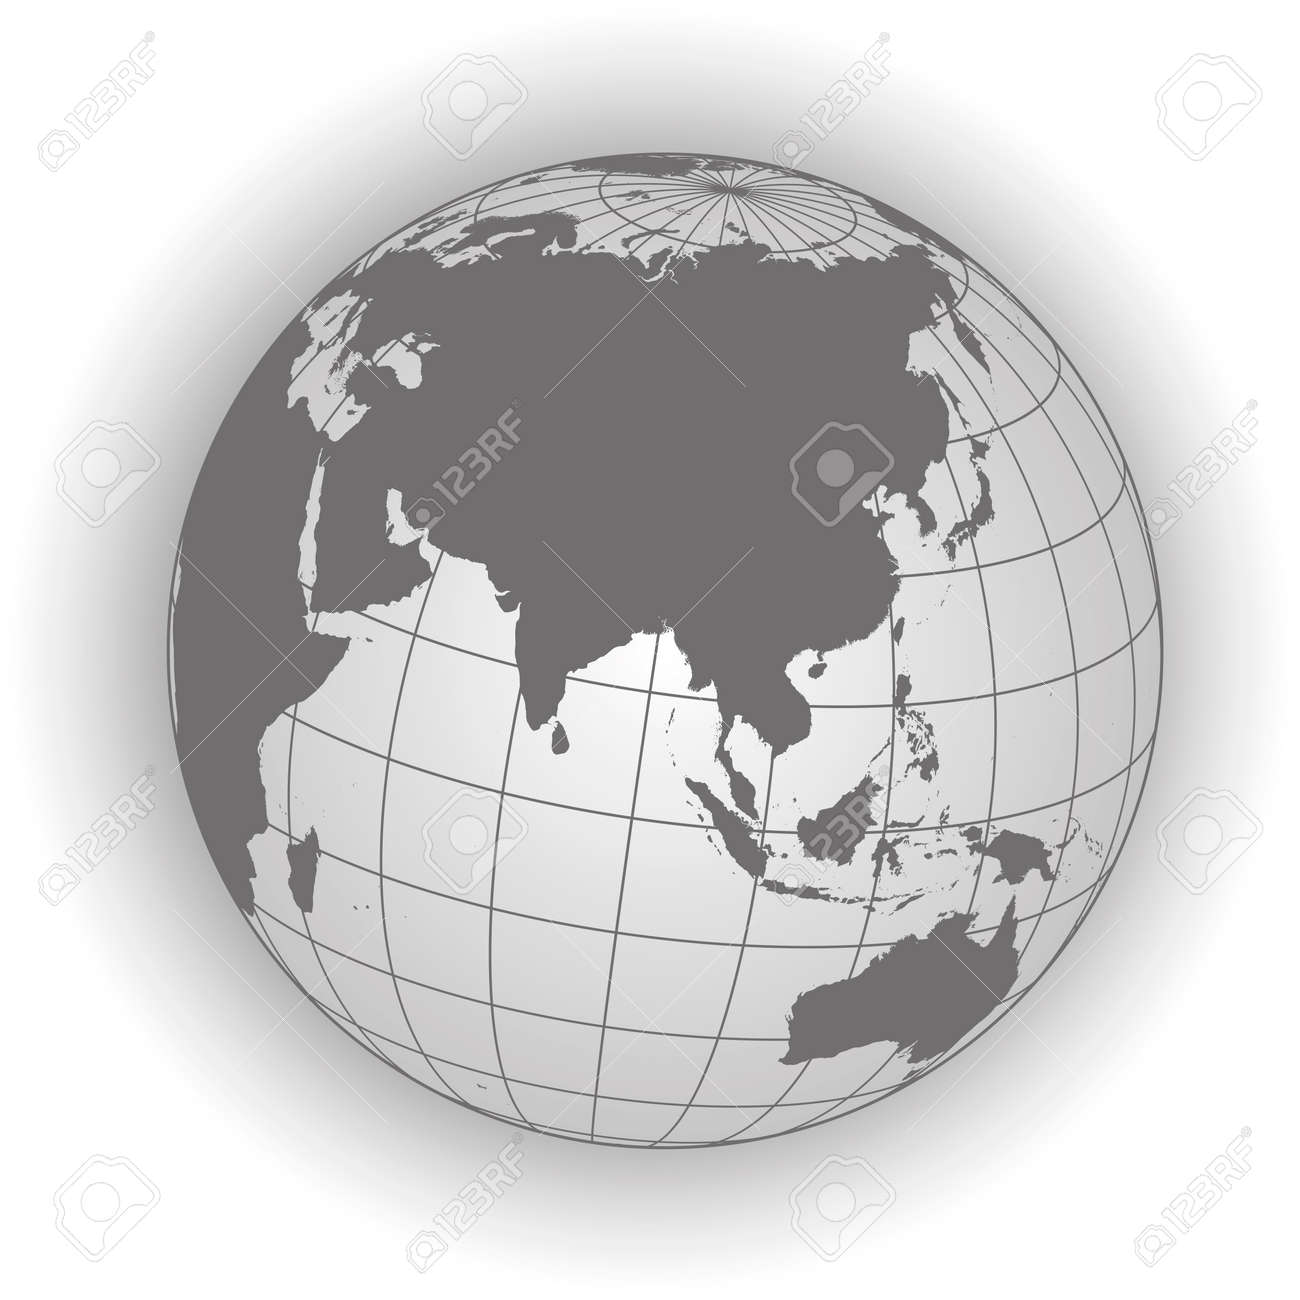 Asia map australia russia africa north pole earth globe asia map australia russia africa north pole earth globe worldmap gumiabroncs Image collections